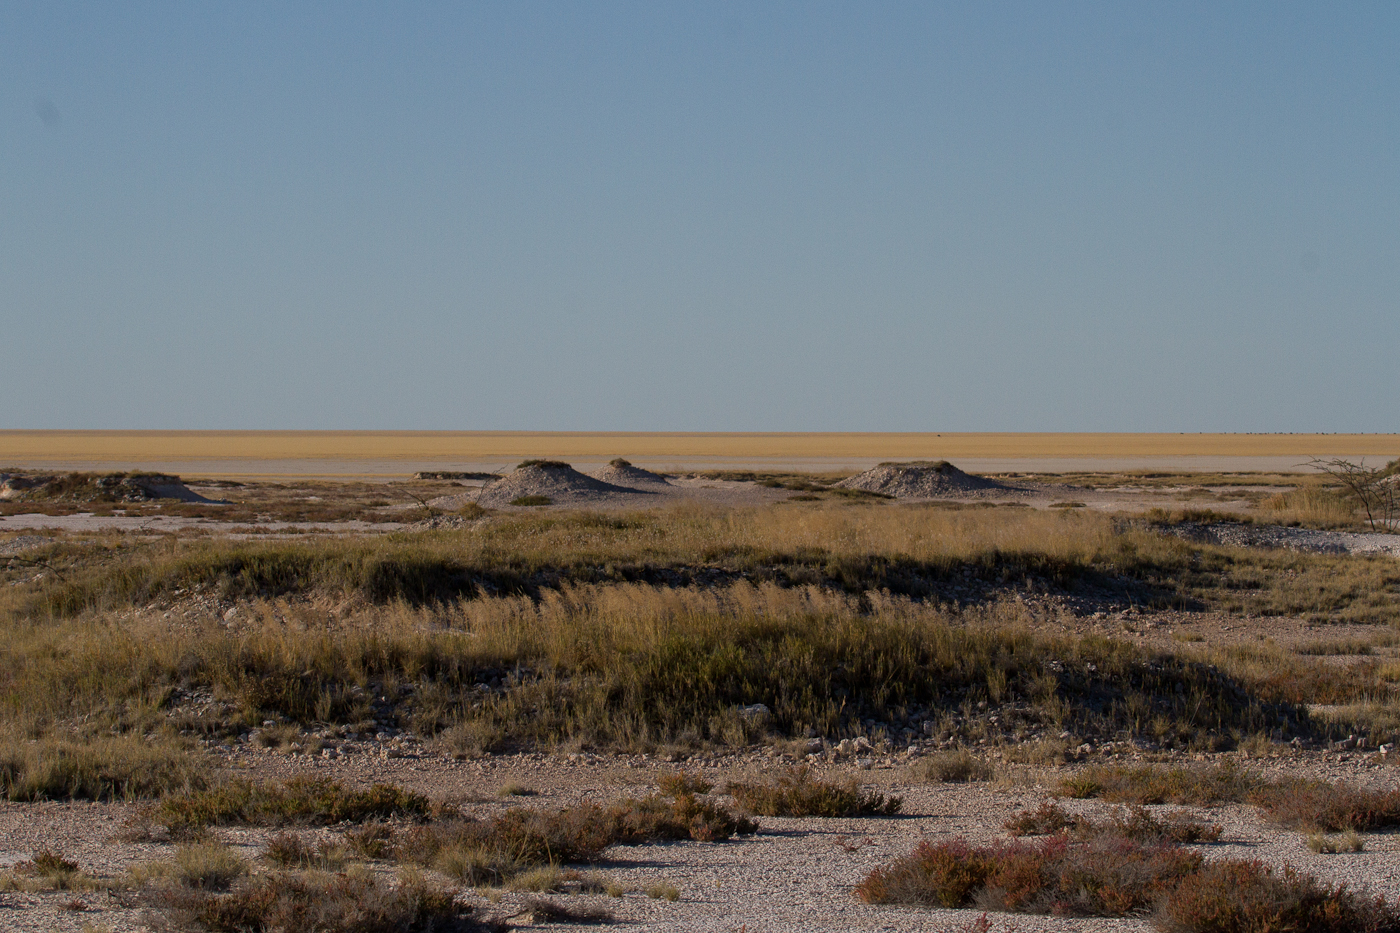 An arid landscape in Etosha National Park